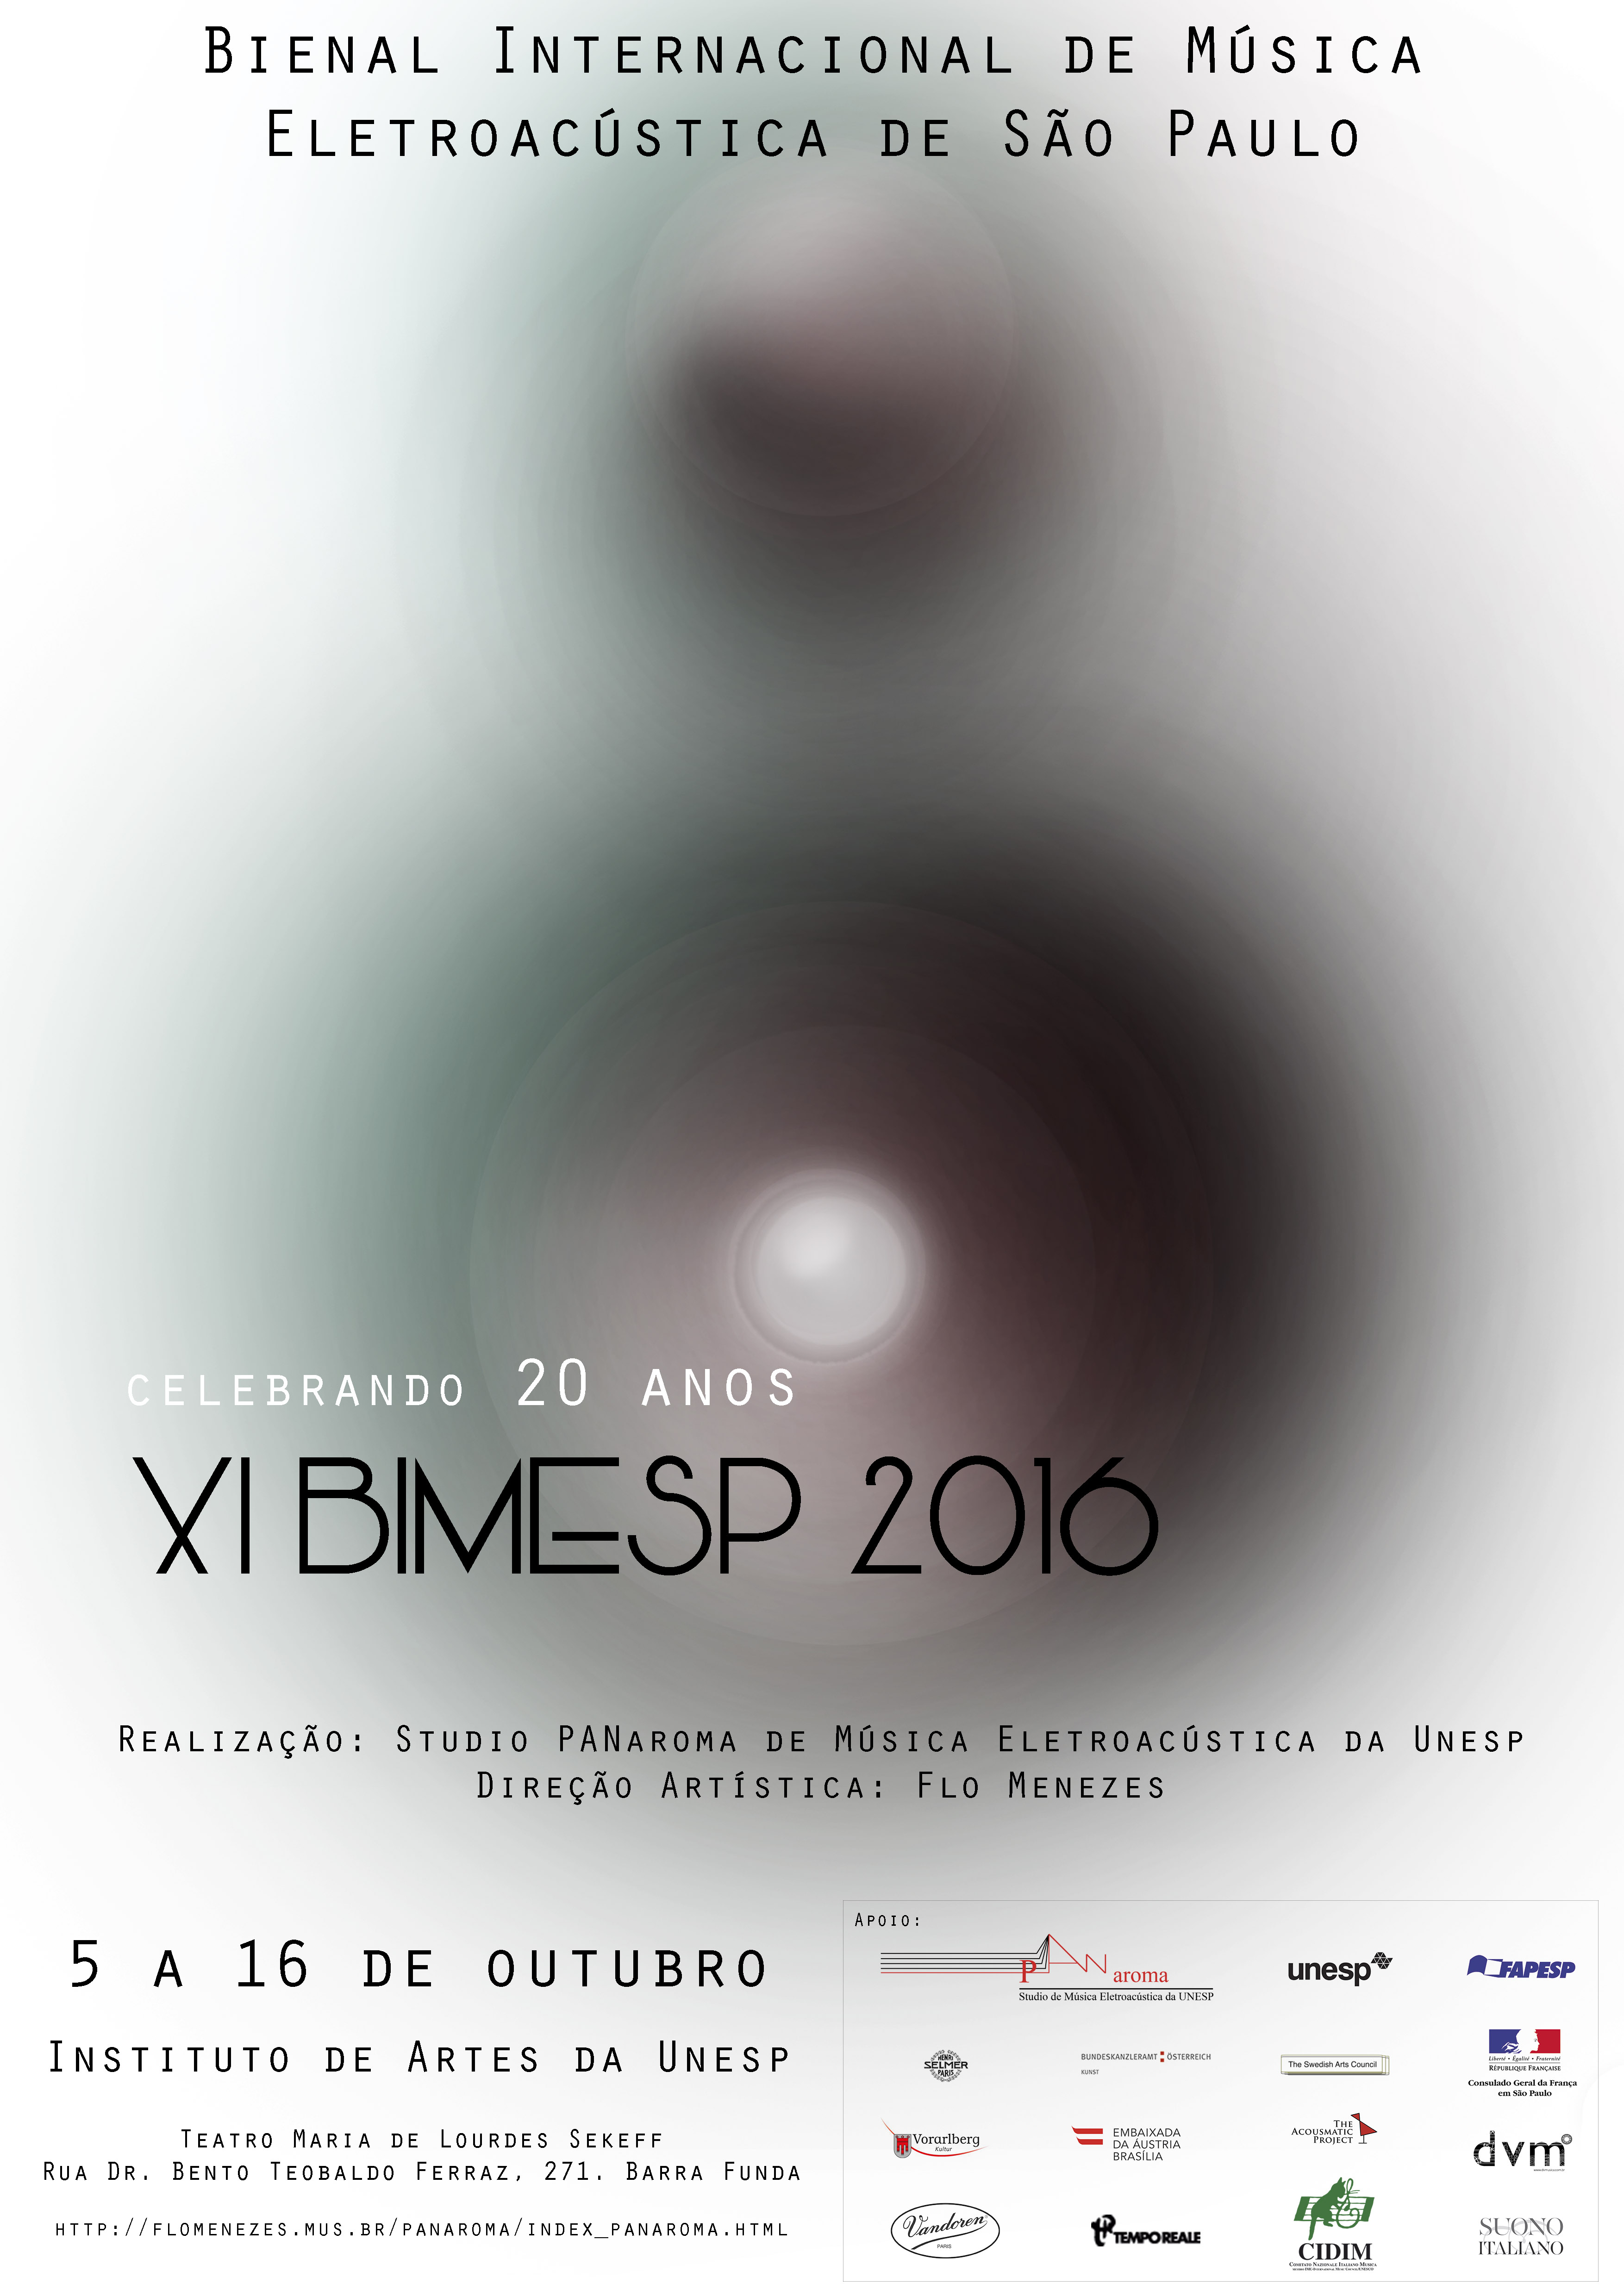 International Biennial For Electroacoustic Music Of So Paulo